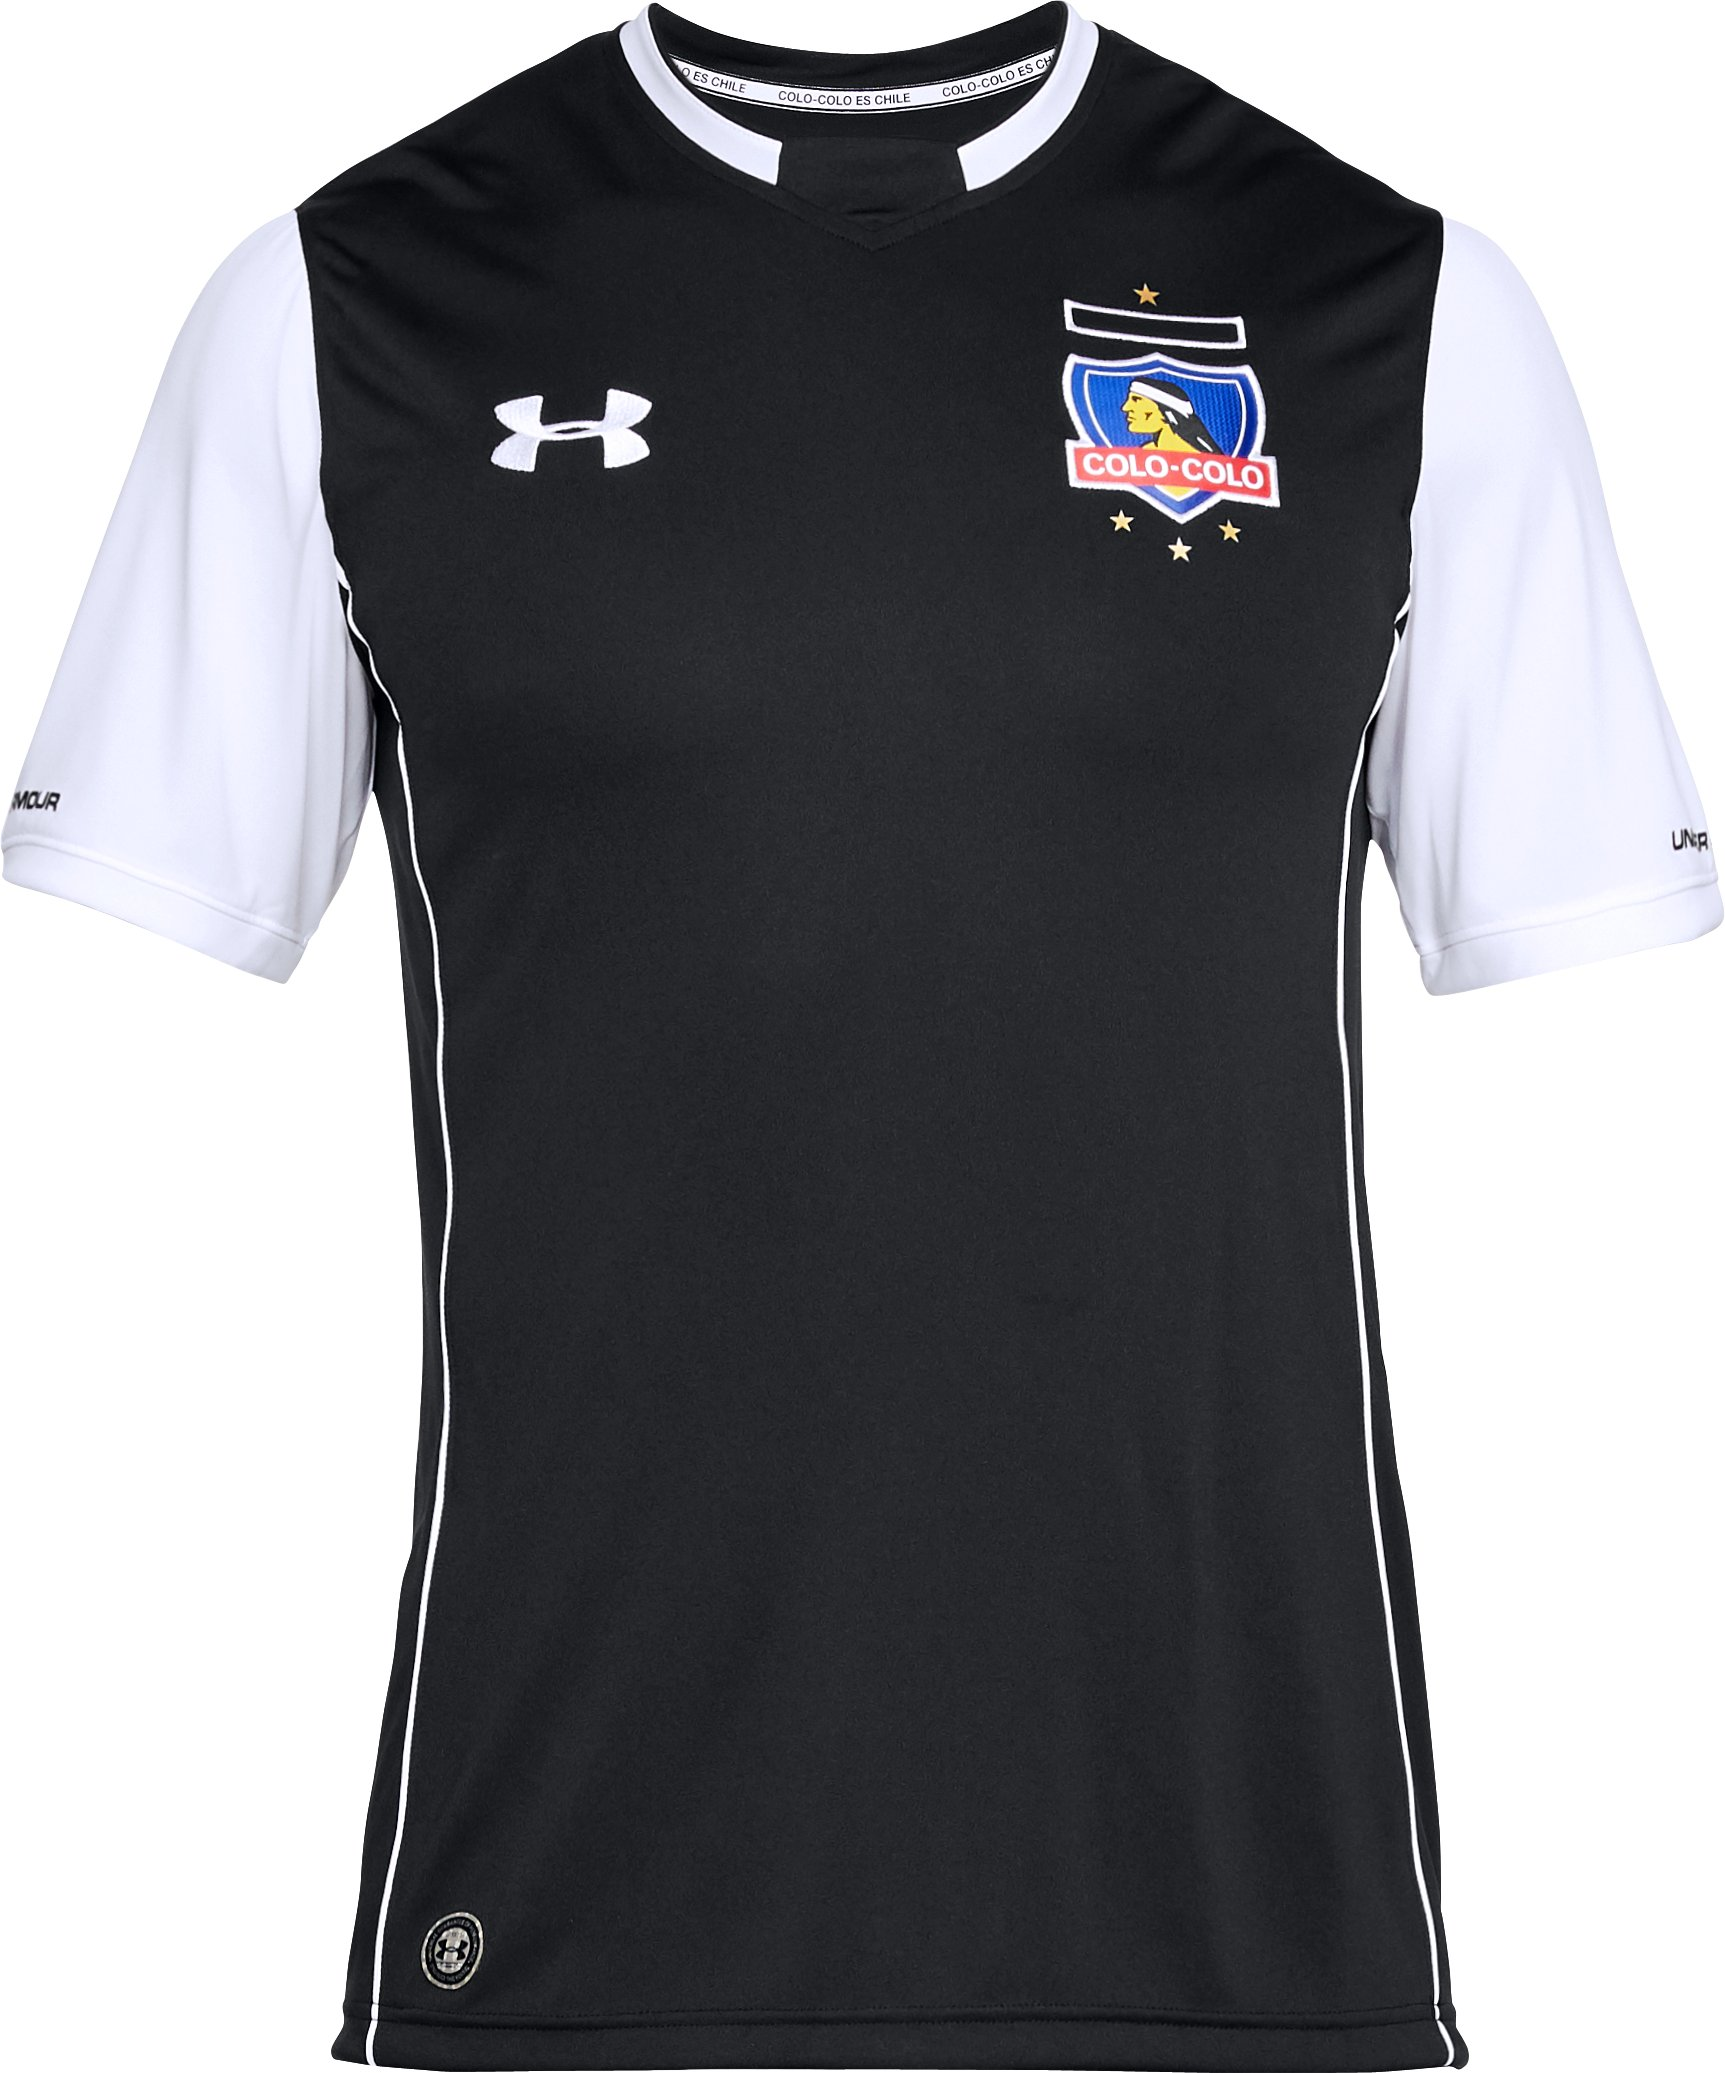 Men's Colo-Colo Replica Away Jersey, Black ,